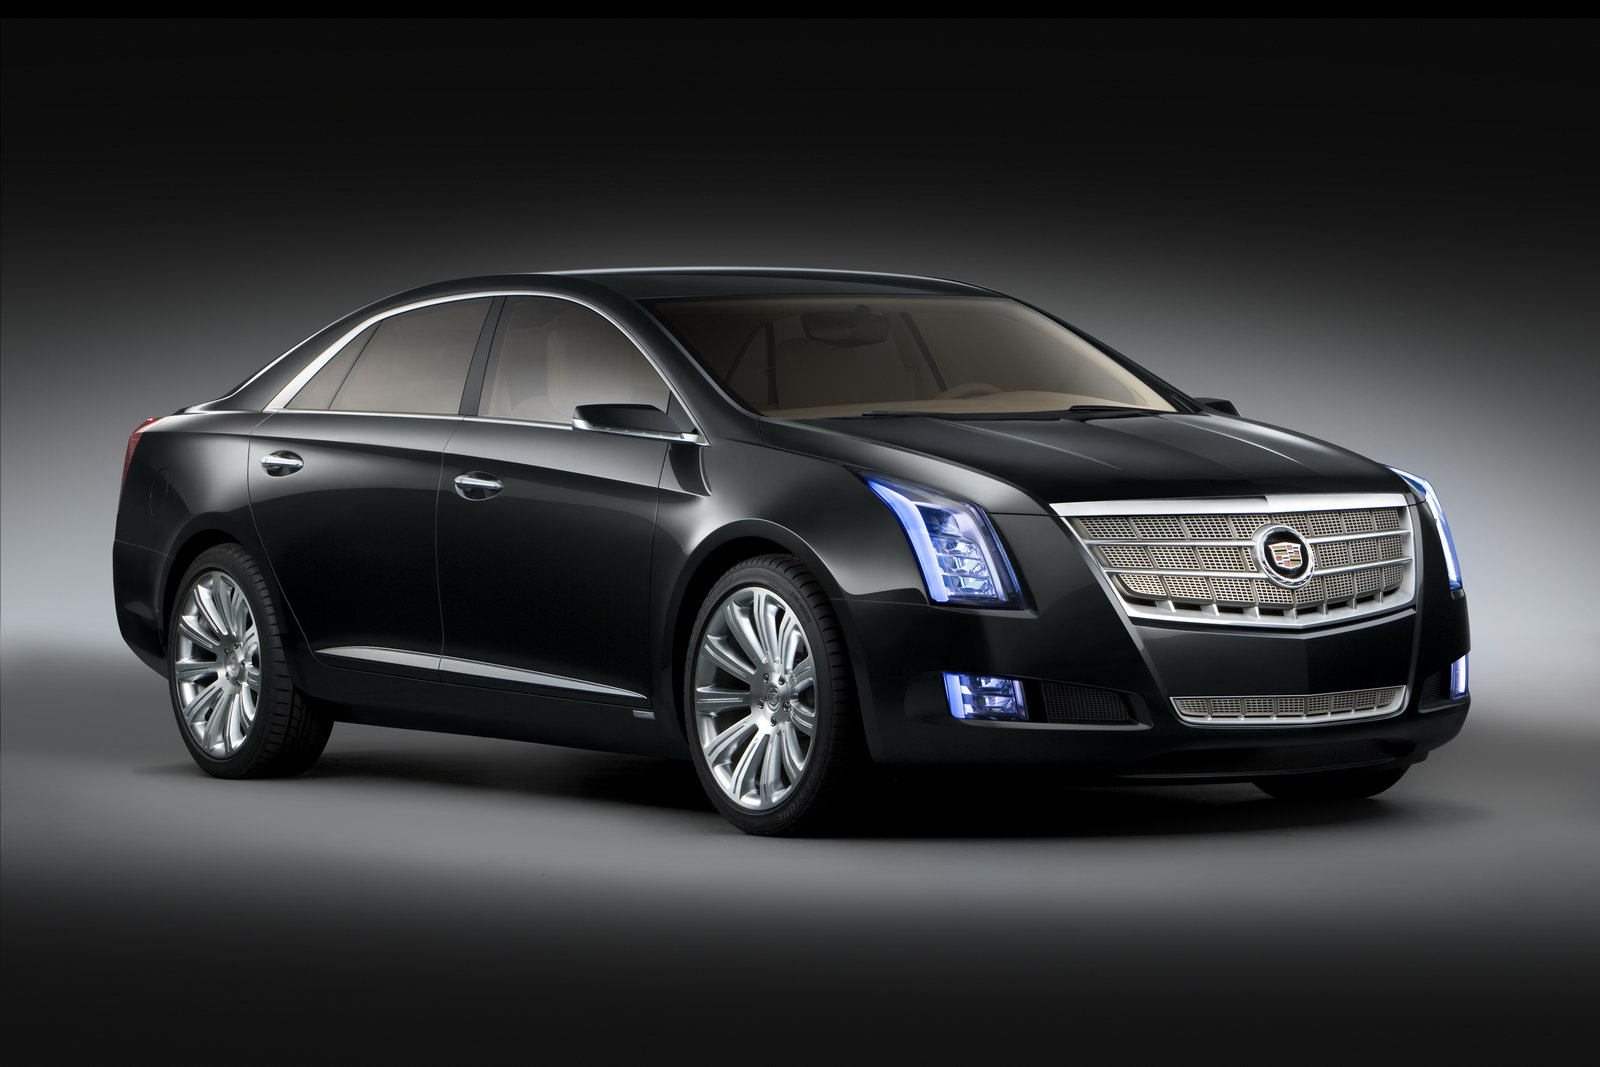 general motors to introduce new cadillac xts luxury sedan in 2013. Black Bedroom Furniture Sets. Home Design Ideas